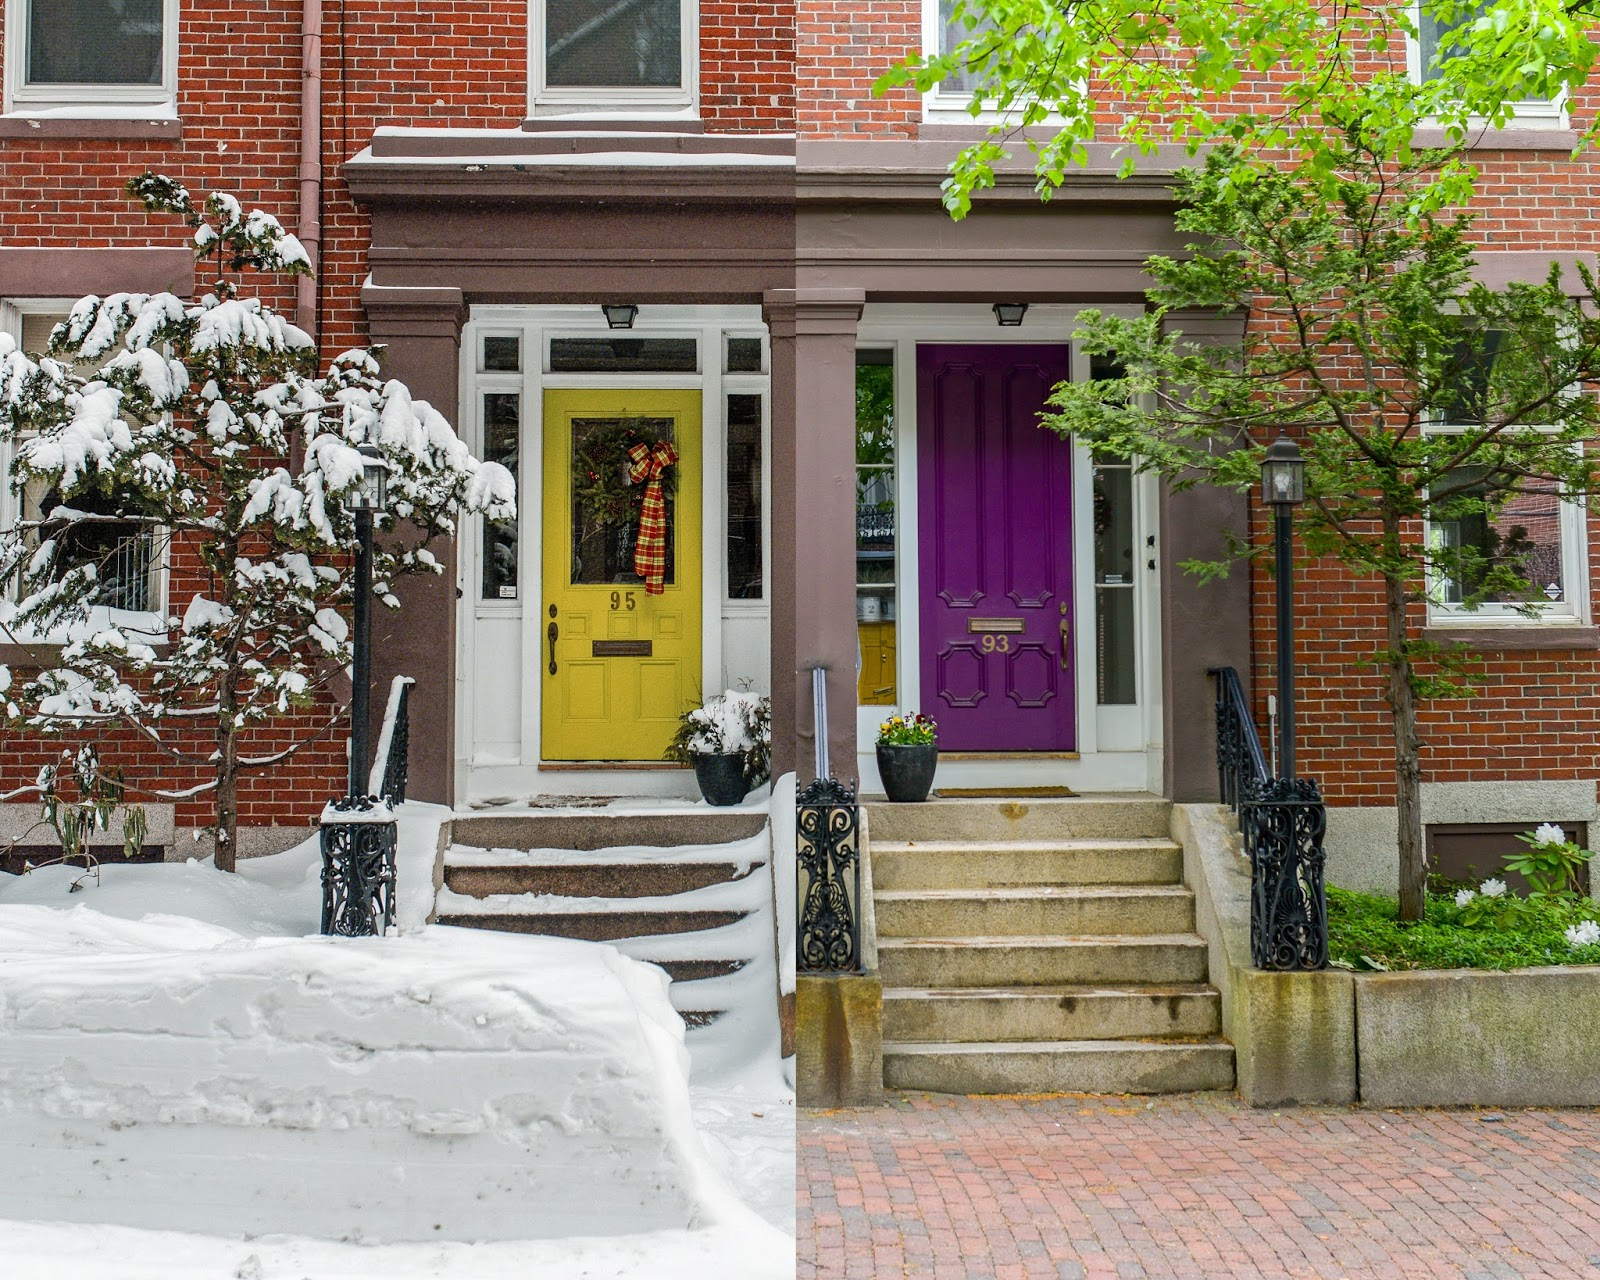 Portland Maine USA May 2017 photo by Corey Templeton. A summer/winter mashup & Corey Templeton Photography: Seasons of Portland: Park Street Doors